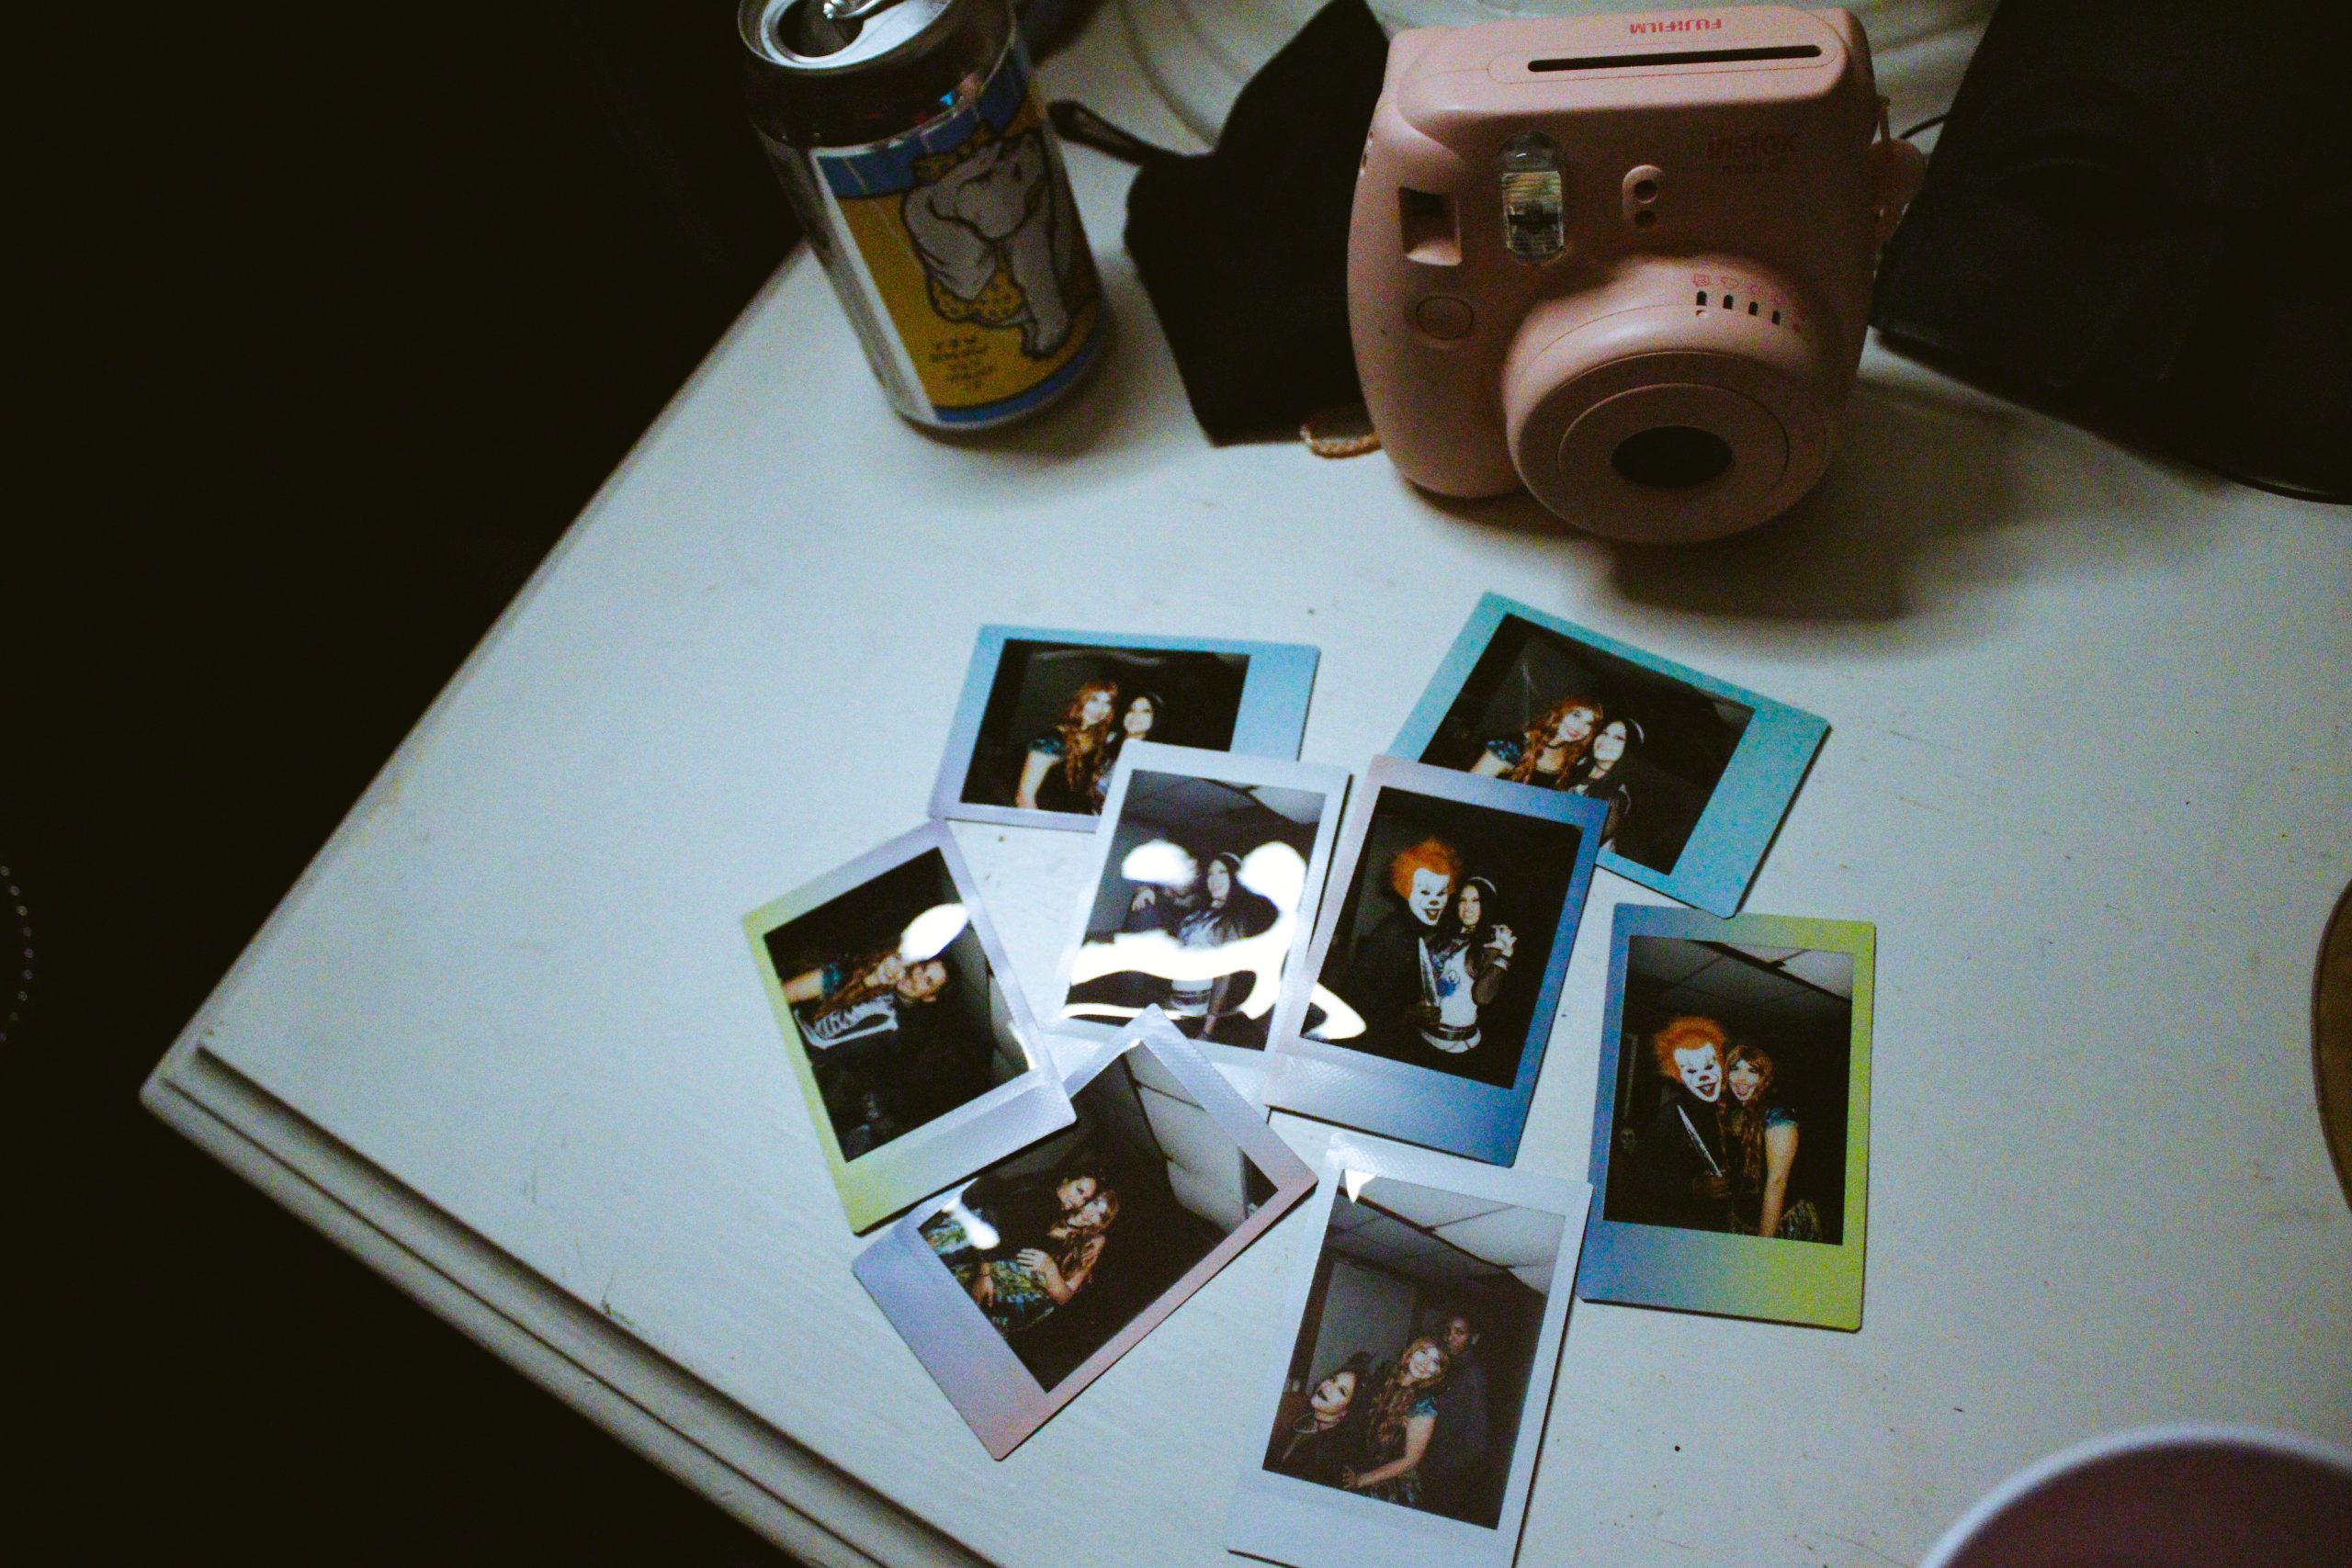 A pink polaroid camera, a beverage can, and photos on a table.